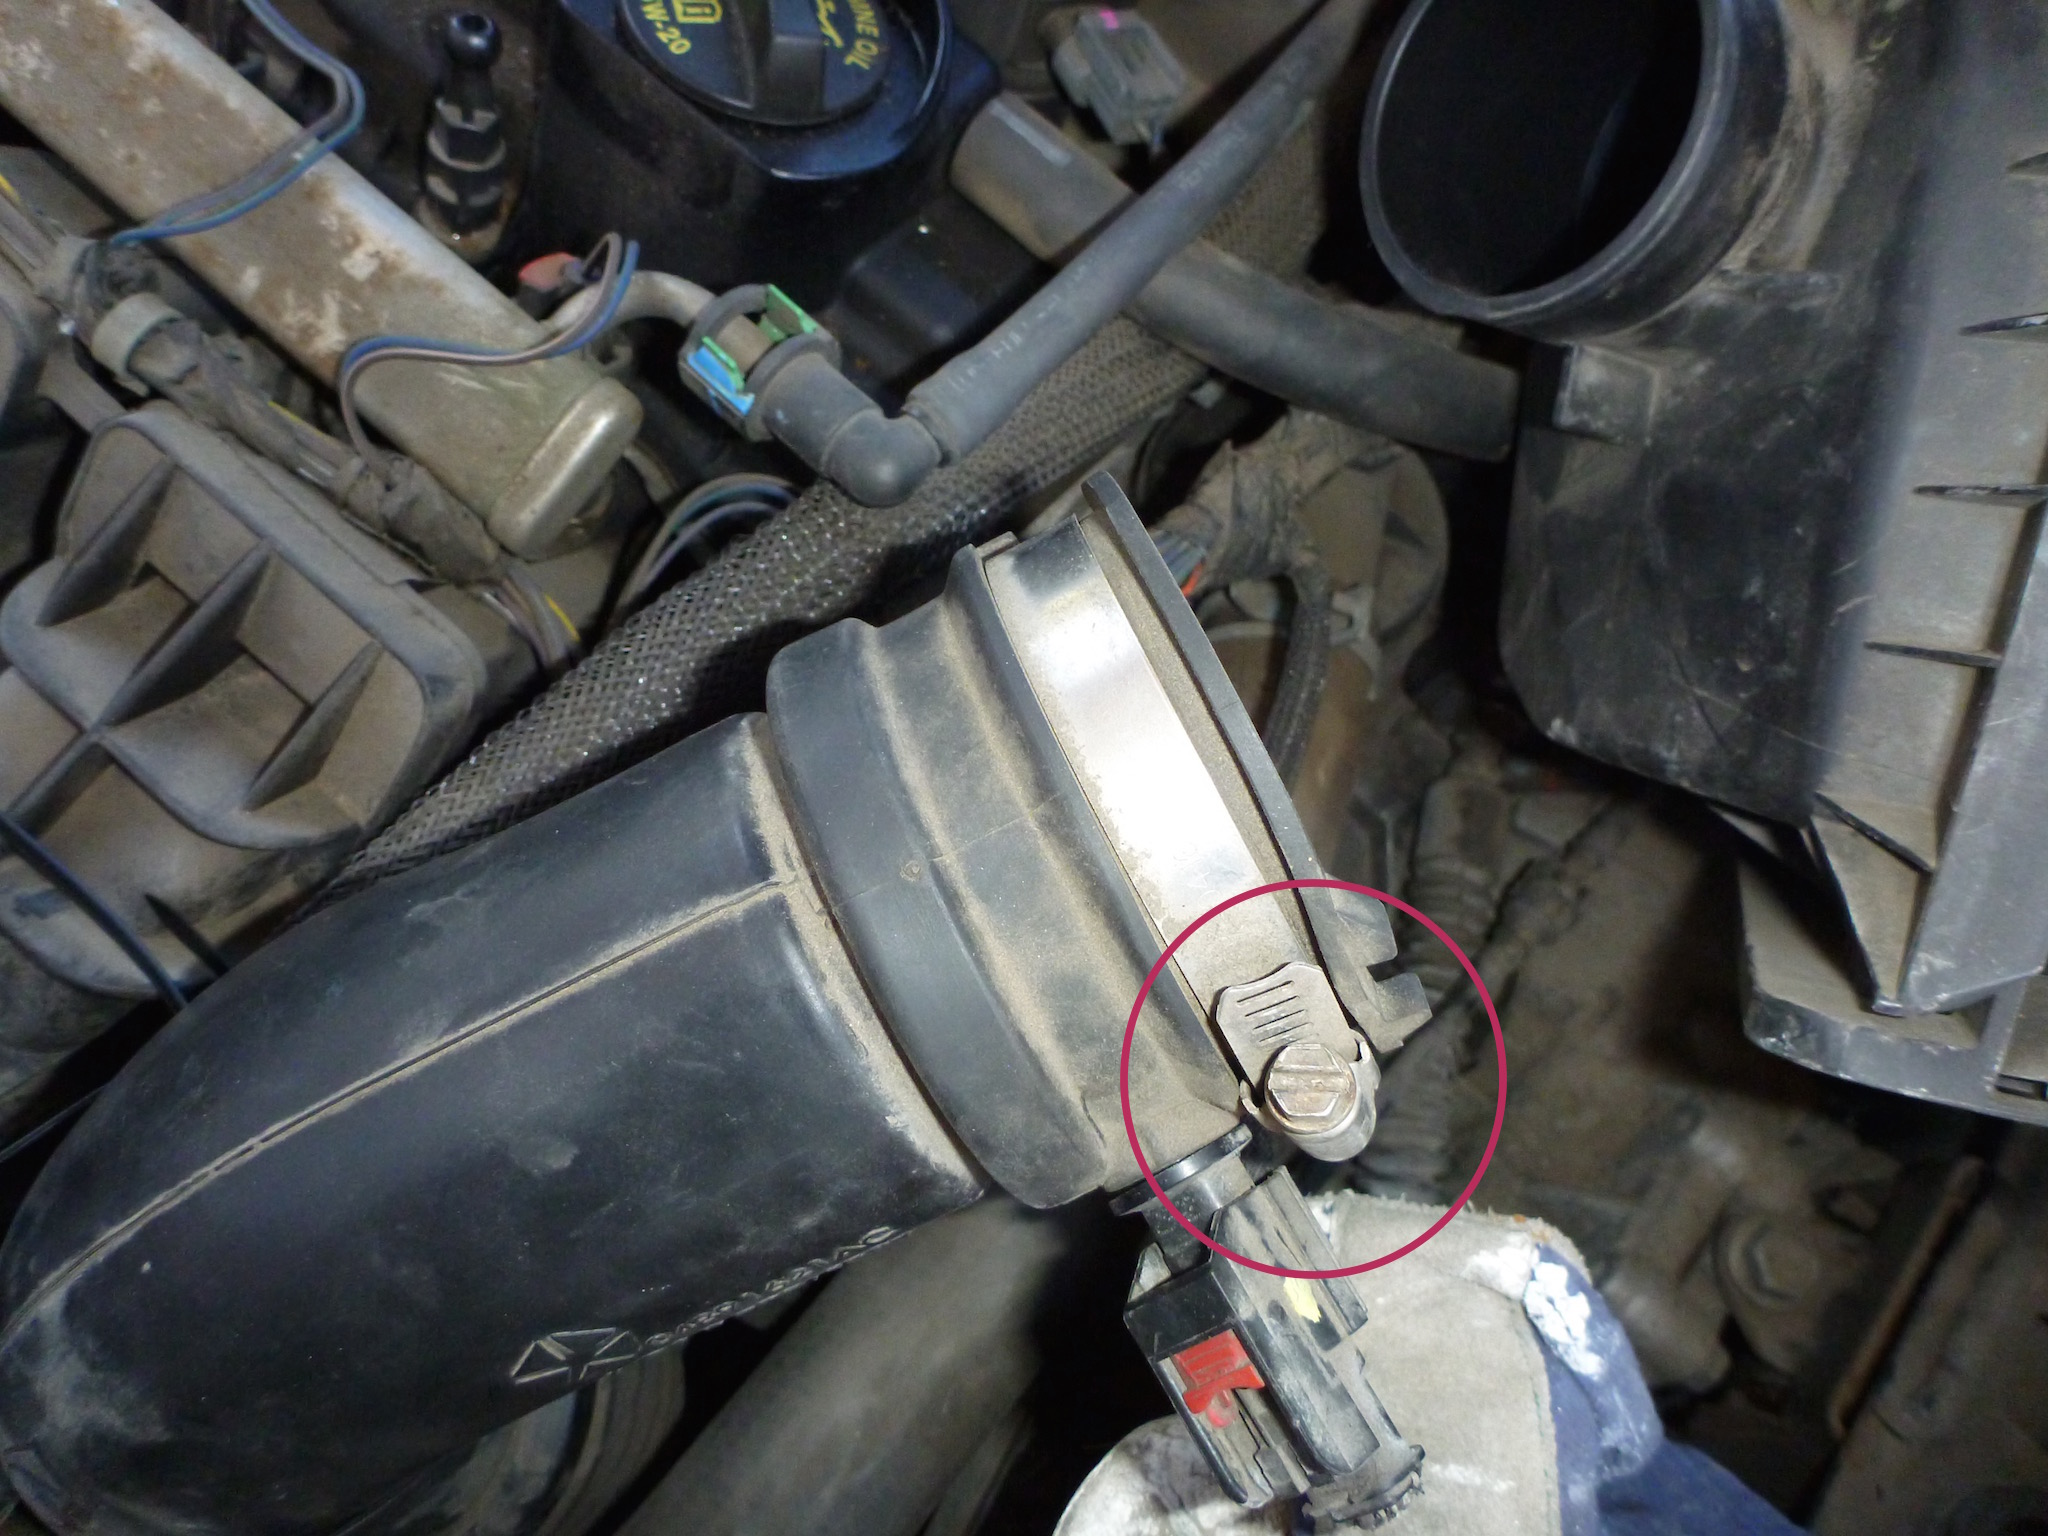 Fix P2004 P2017 Intake Manifold Runner Control Stuck Open 2010 Dodge Journey Fuel Filter Location